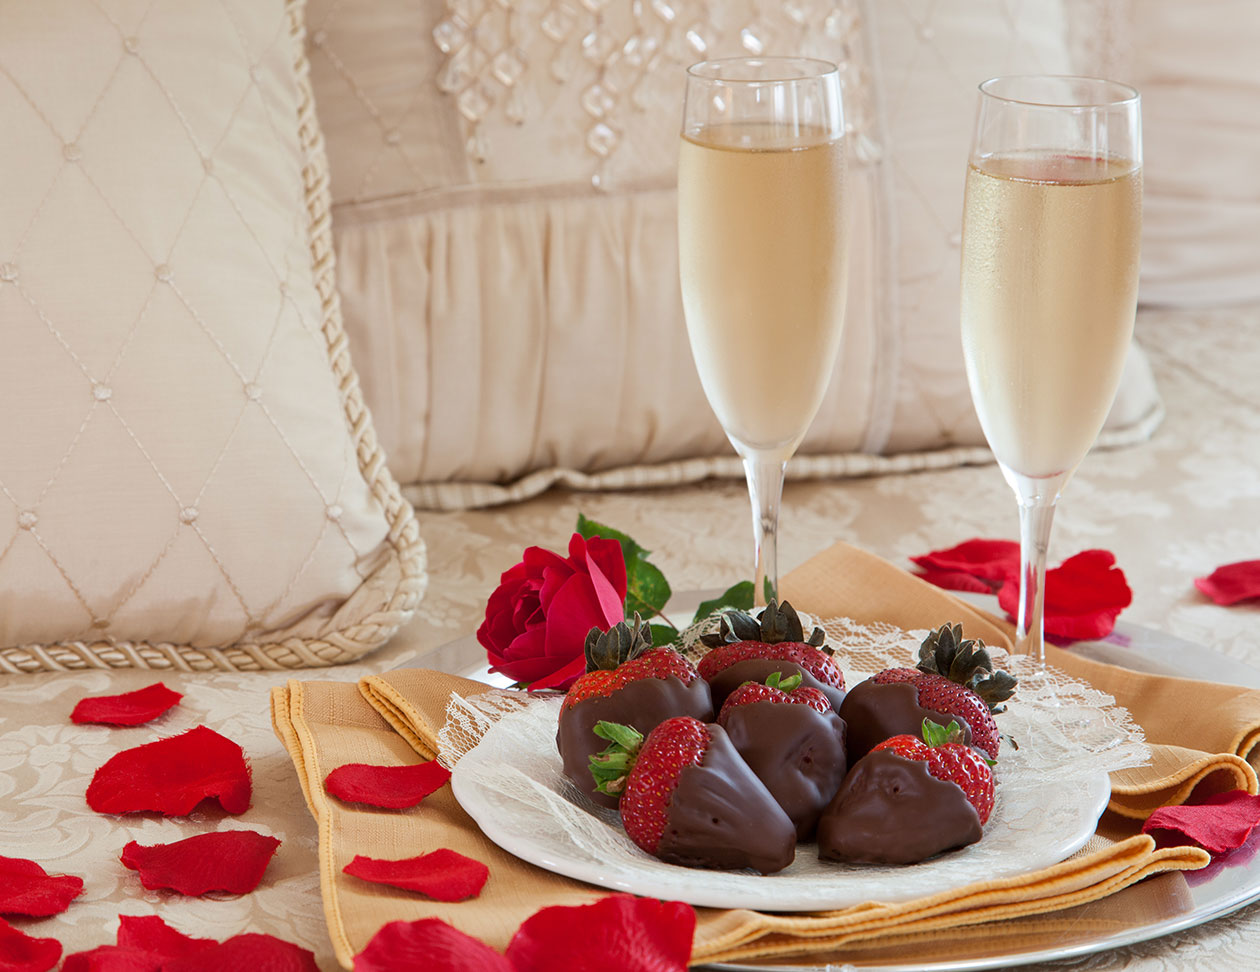 Chocolate-dipped strawberries with rose petals and sparkling cider